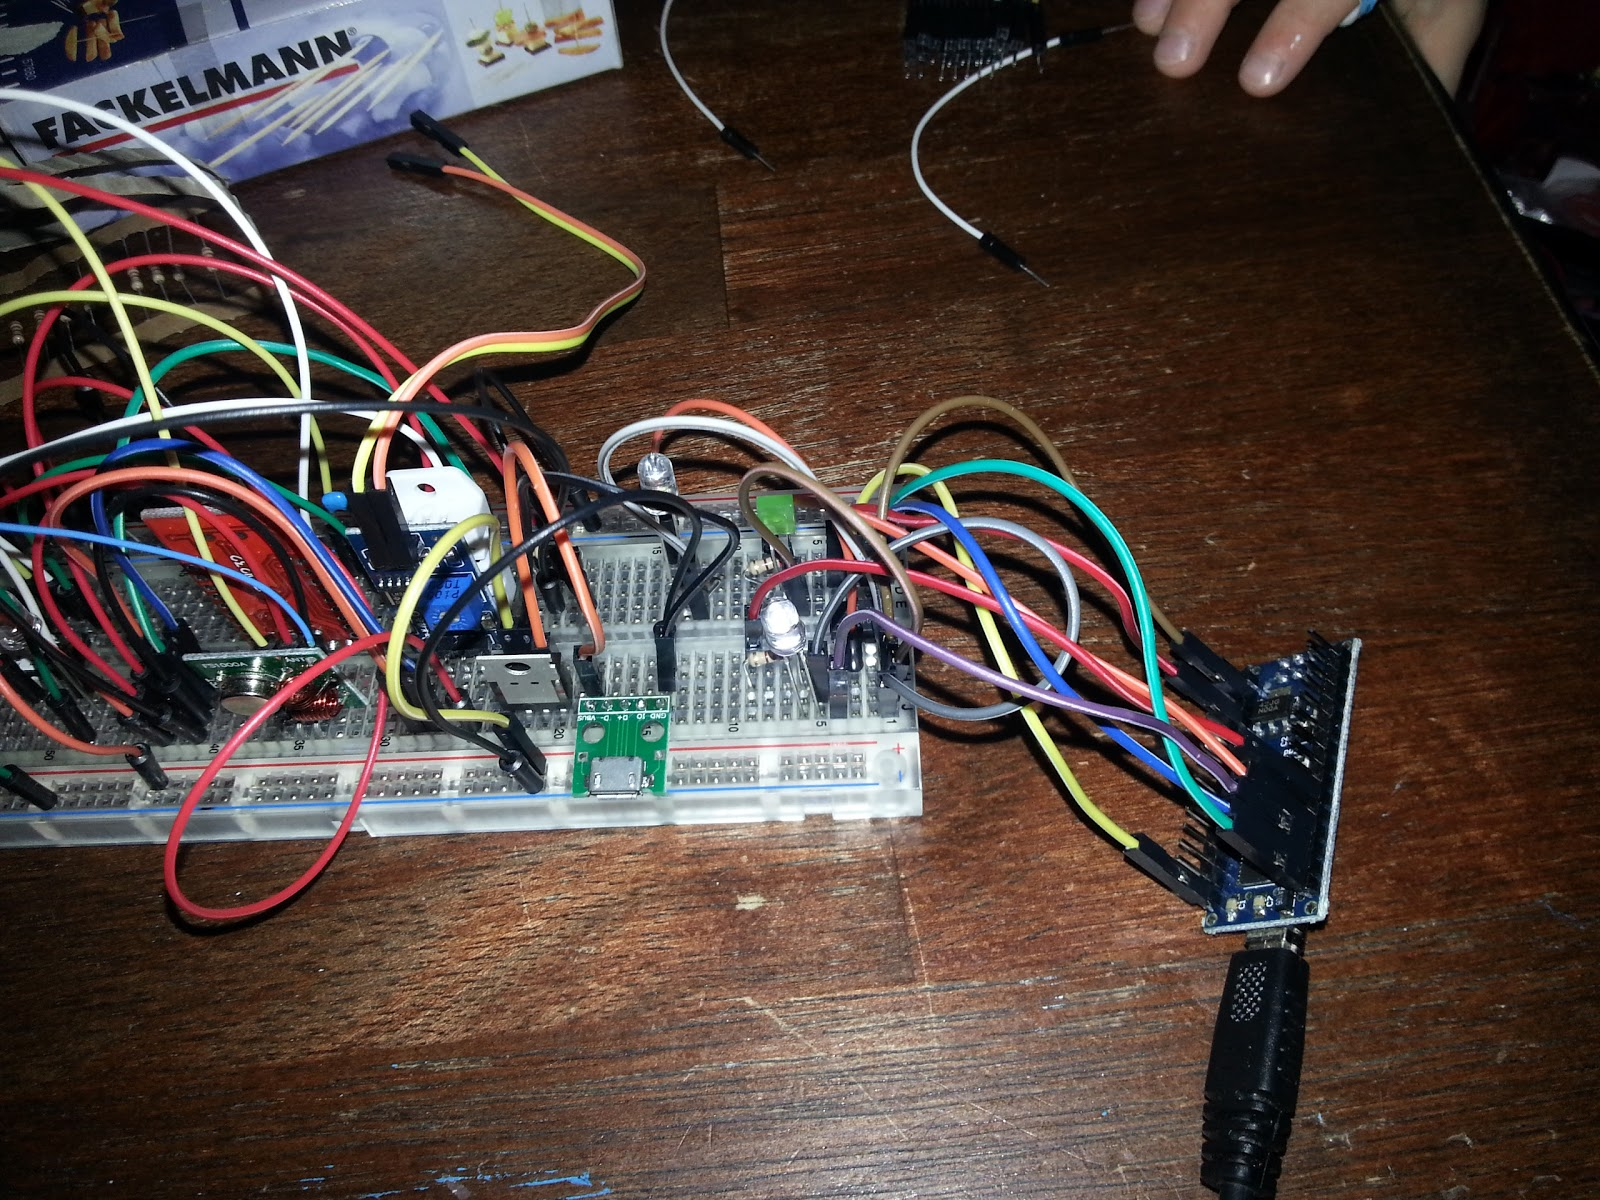 Arduino Programming Attiny85 Using Nano Wiring Upload The Isp Sketch To